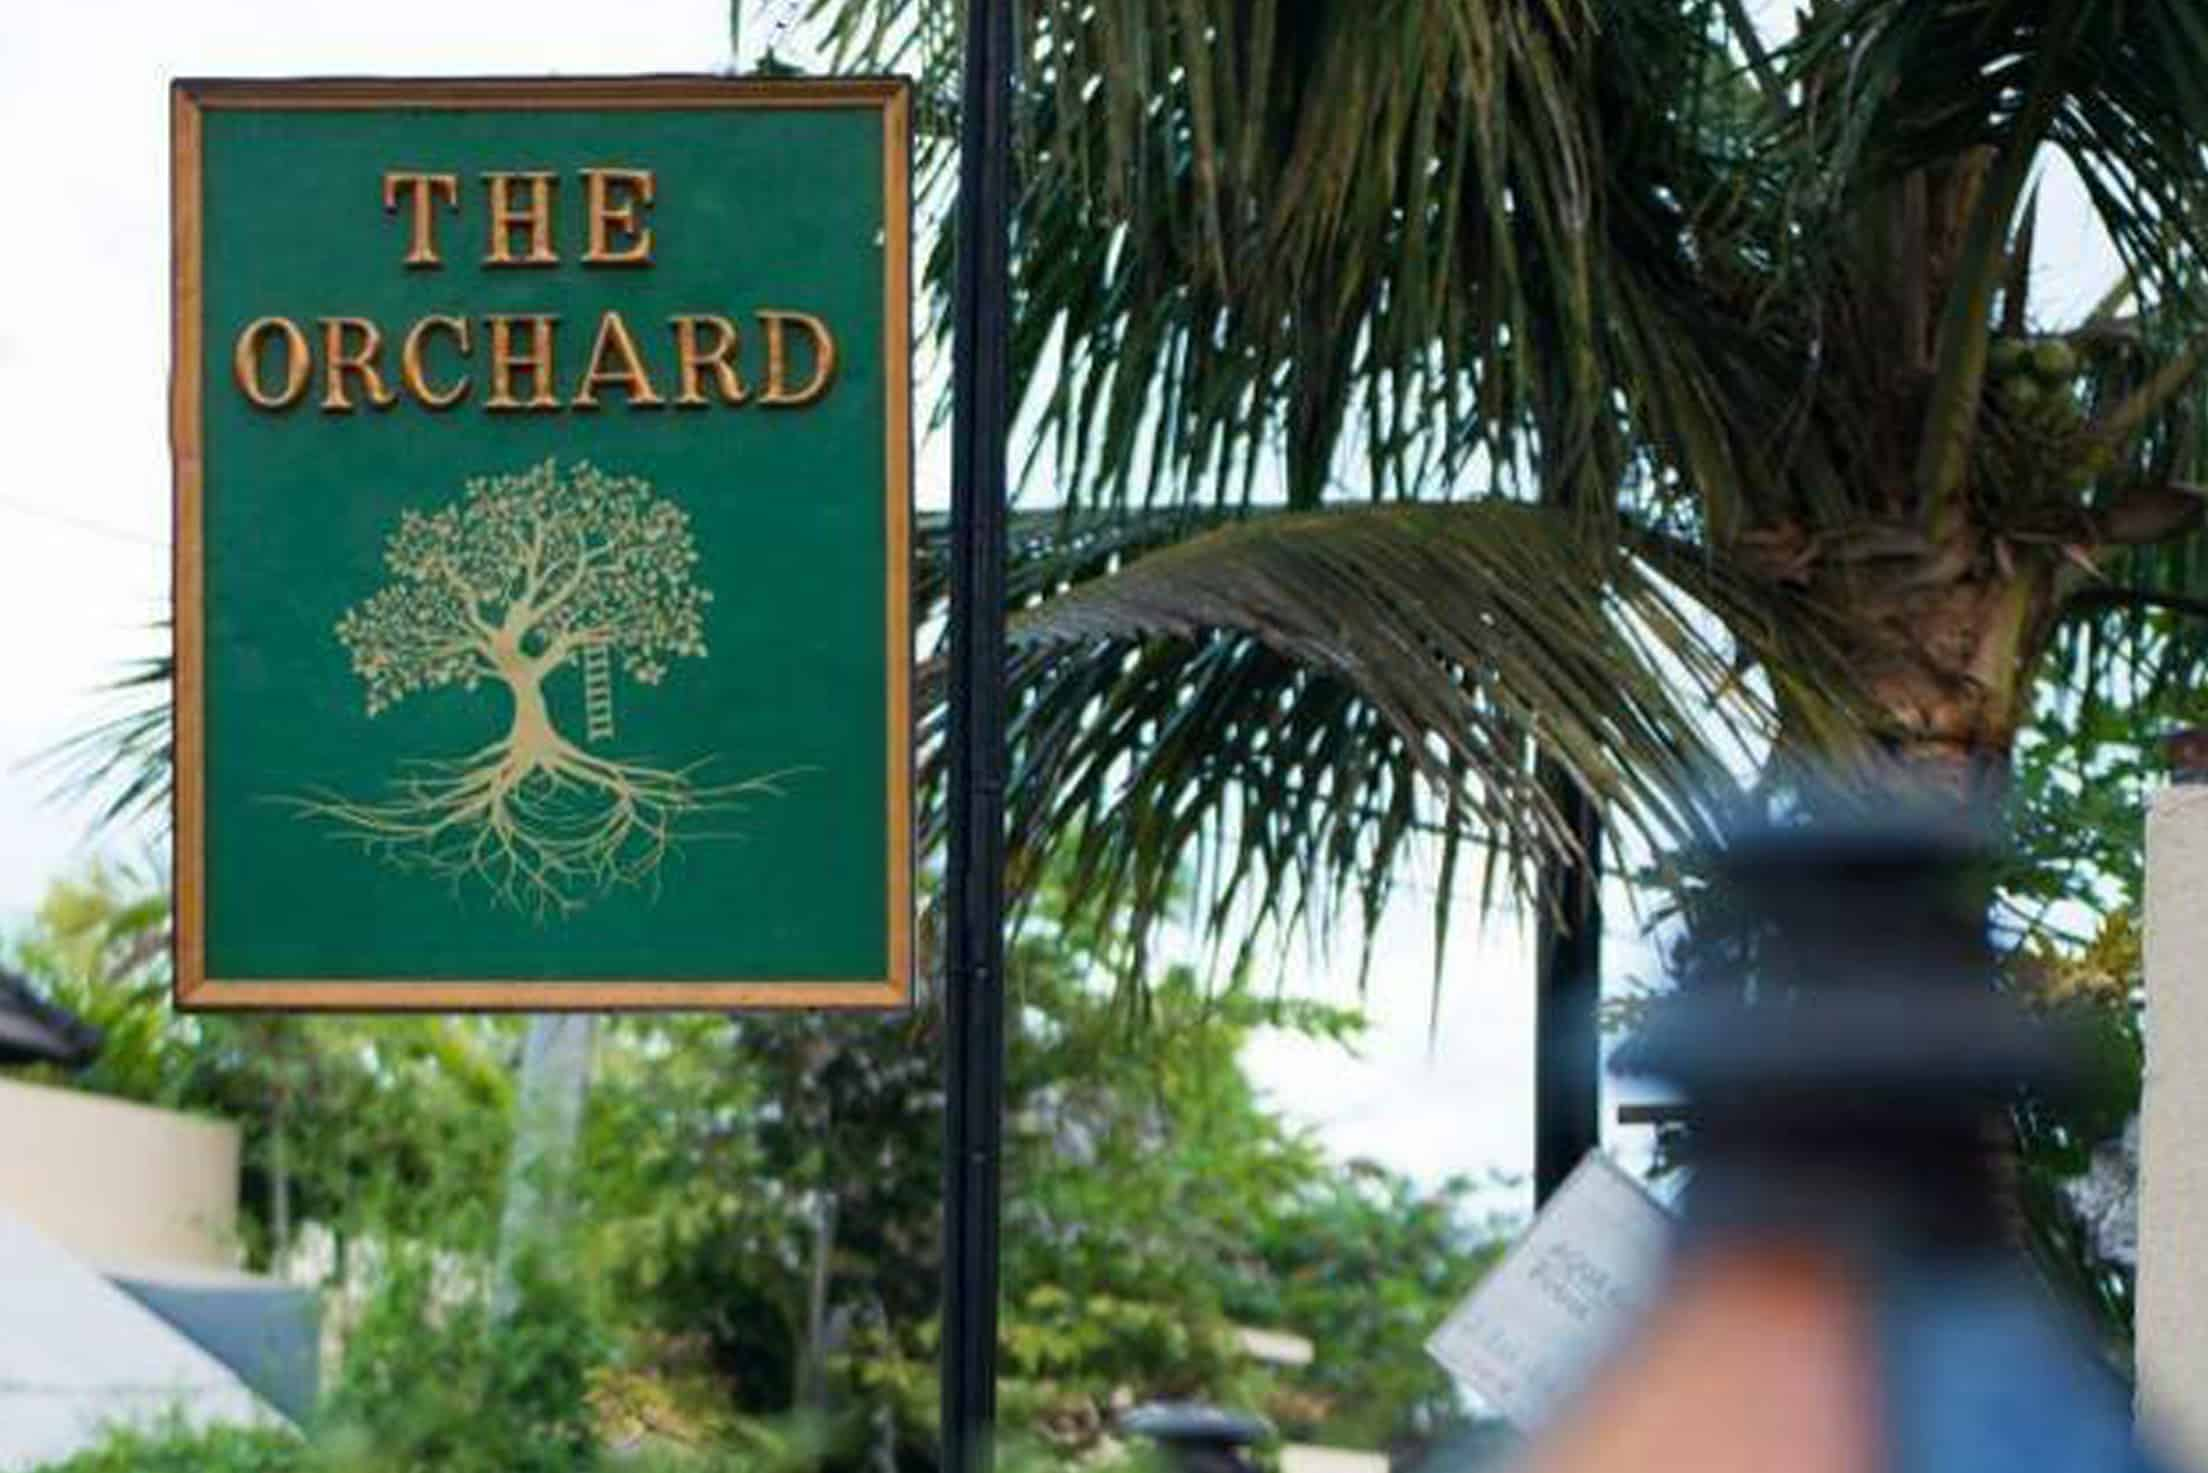 BALI MUSICIANS APPEAL FROM THE GOOD FOLK AT THE ORCHARD BALI